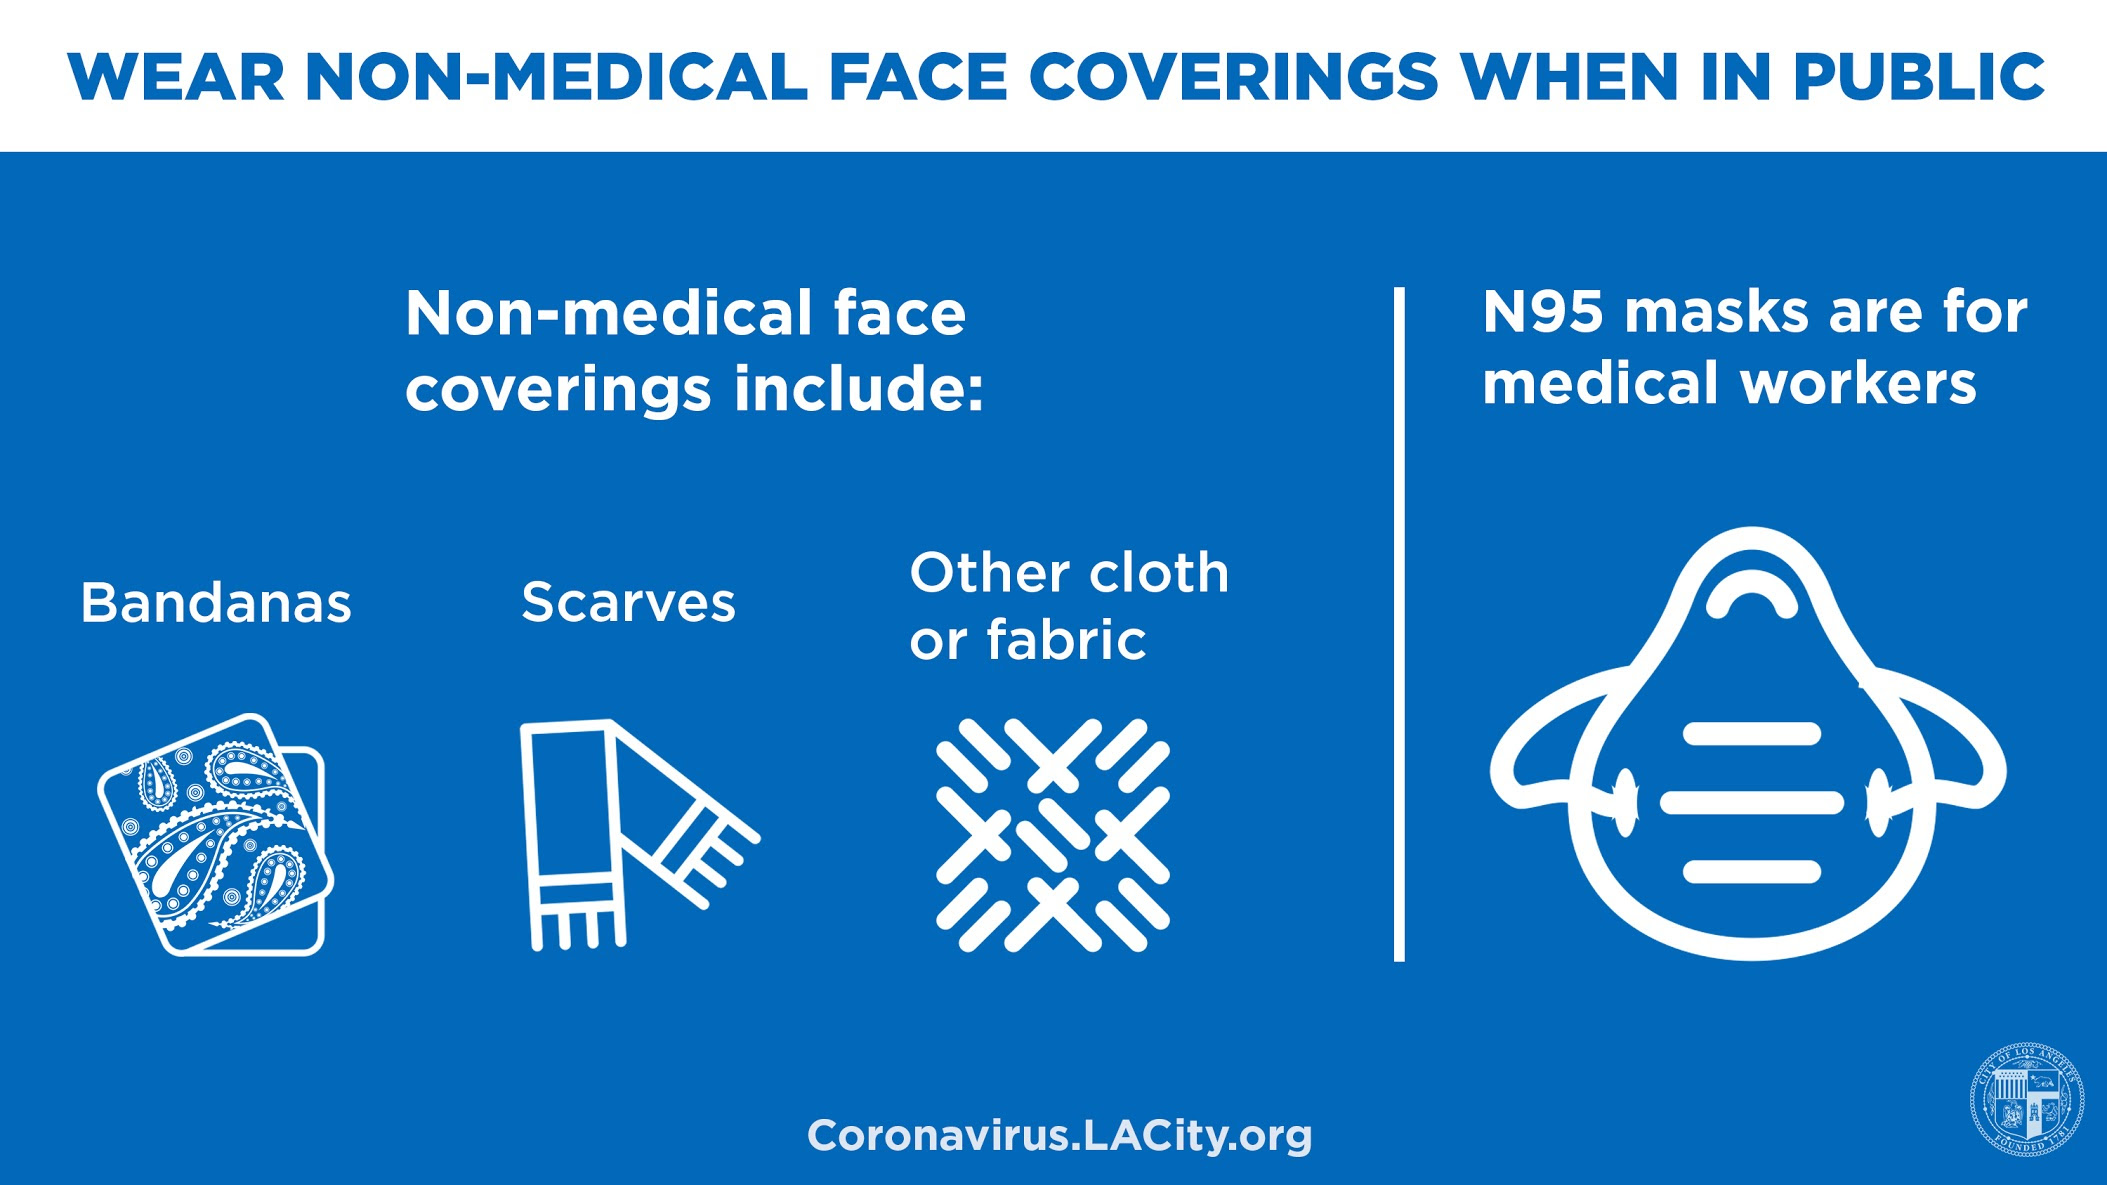 Use a cloth face covering in public, n95 masks are for medical workers